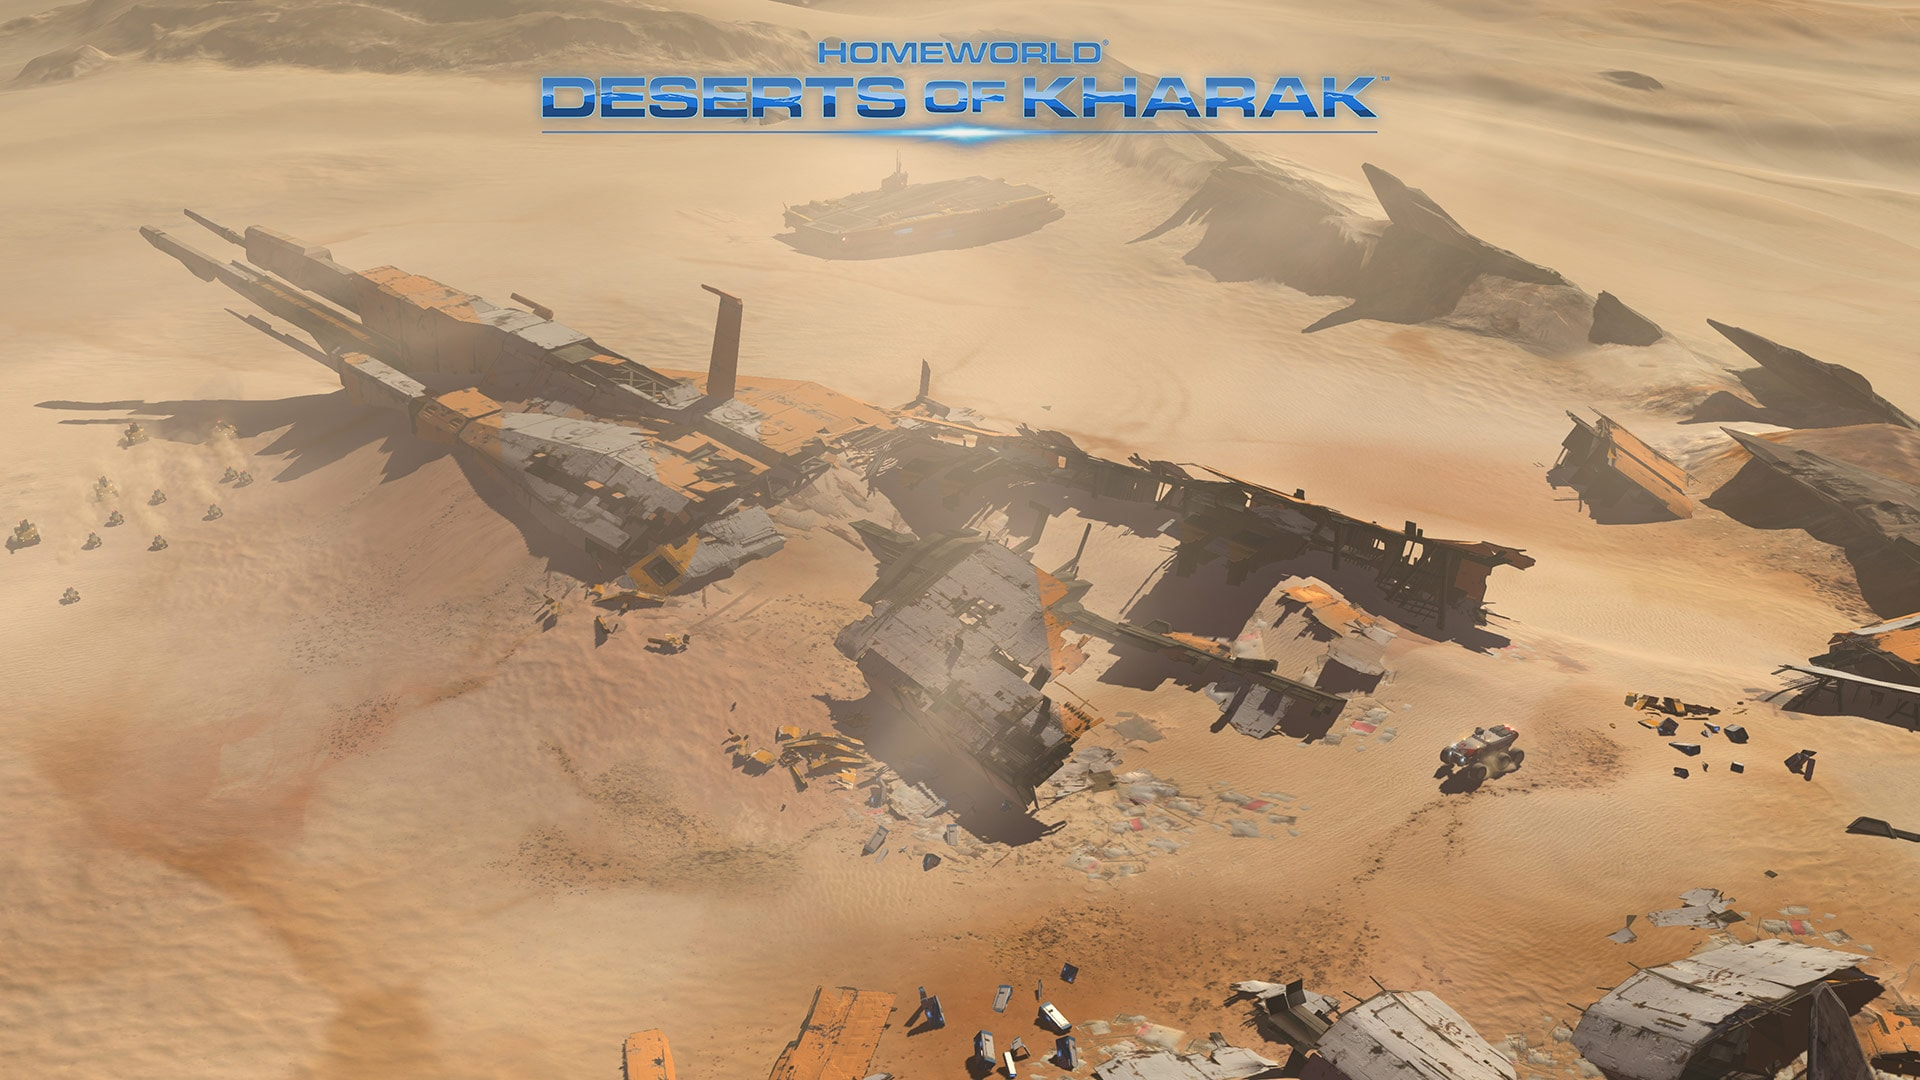 Homeworld: Deserts of Kharak widescreen wallpapers